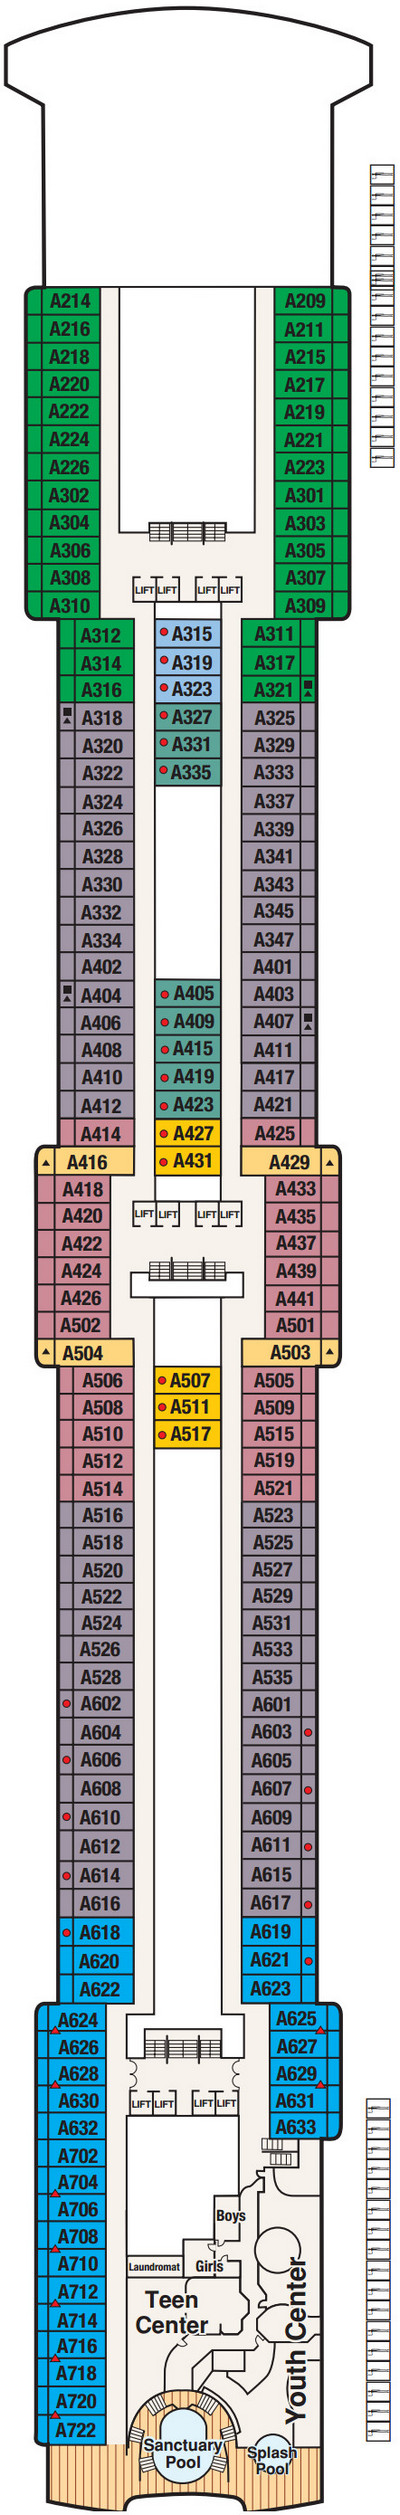 Coral Princess Aloha Deck 12 layout